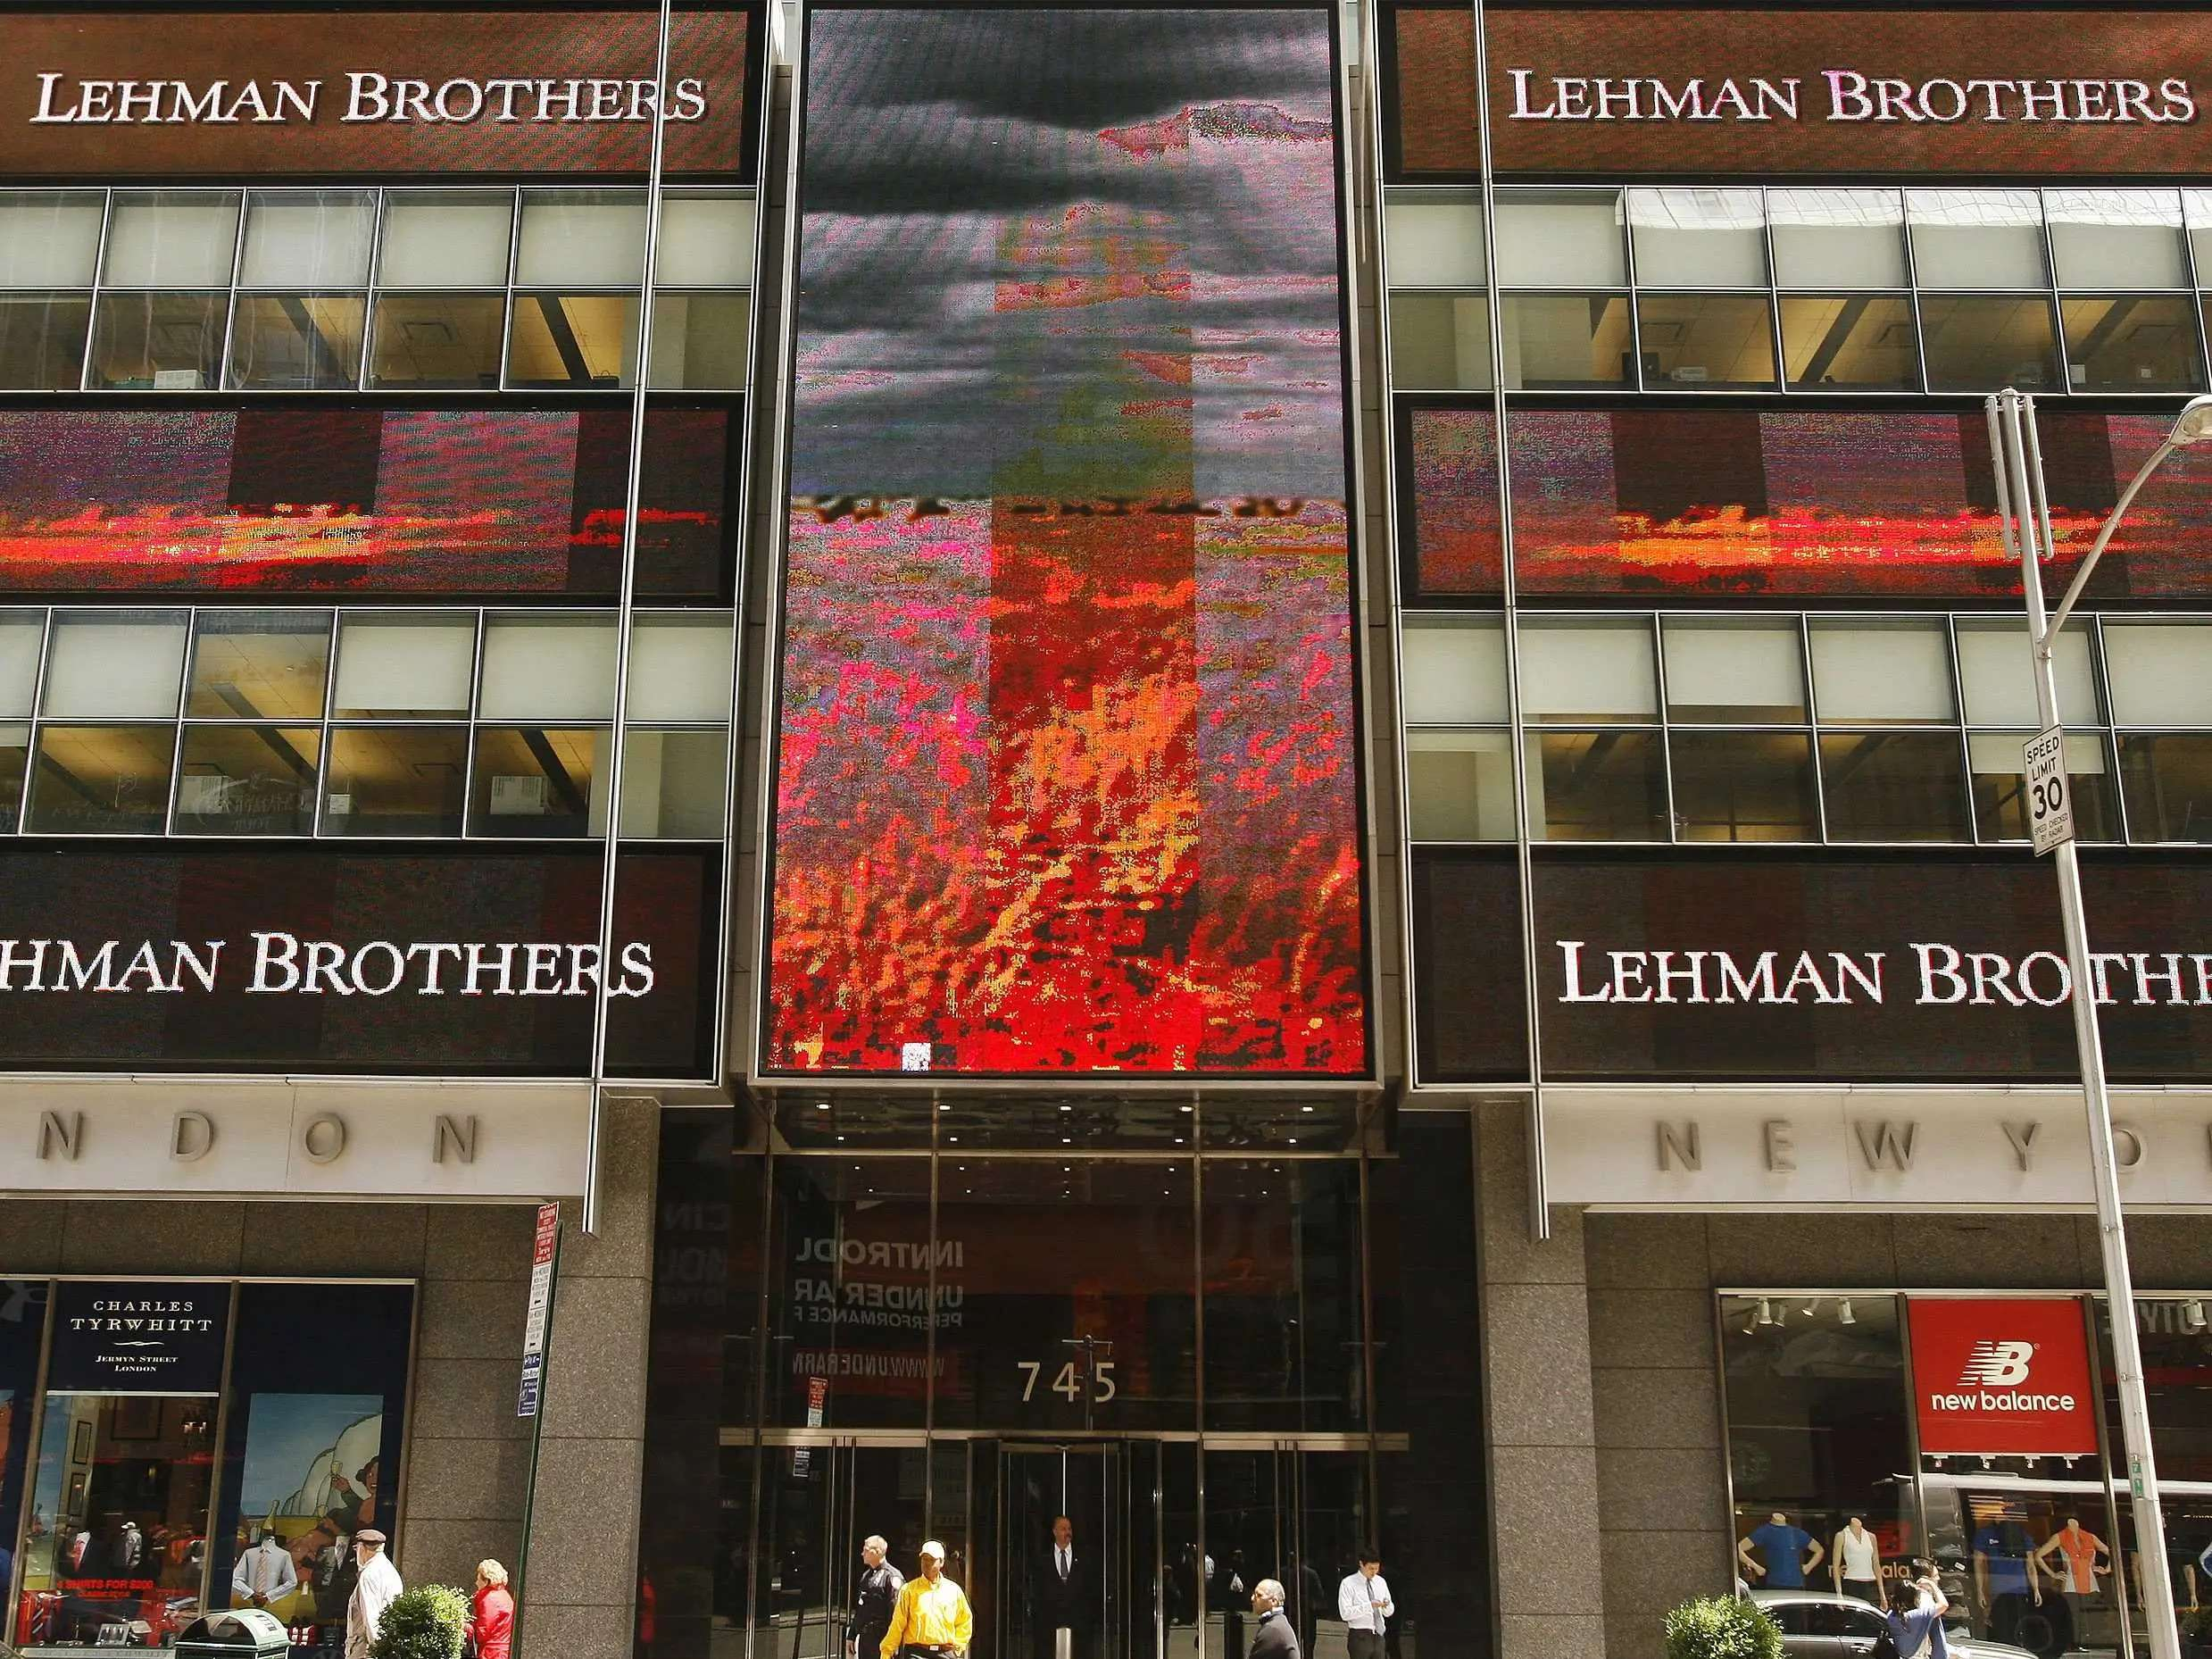 SEP 14, 2008: Meanwhile, Lehman Brothers can't find a buyer and files for bankruptcy.